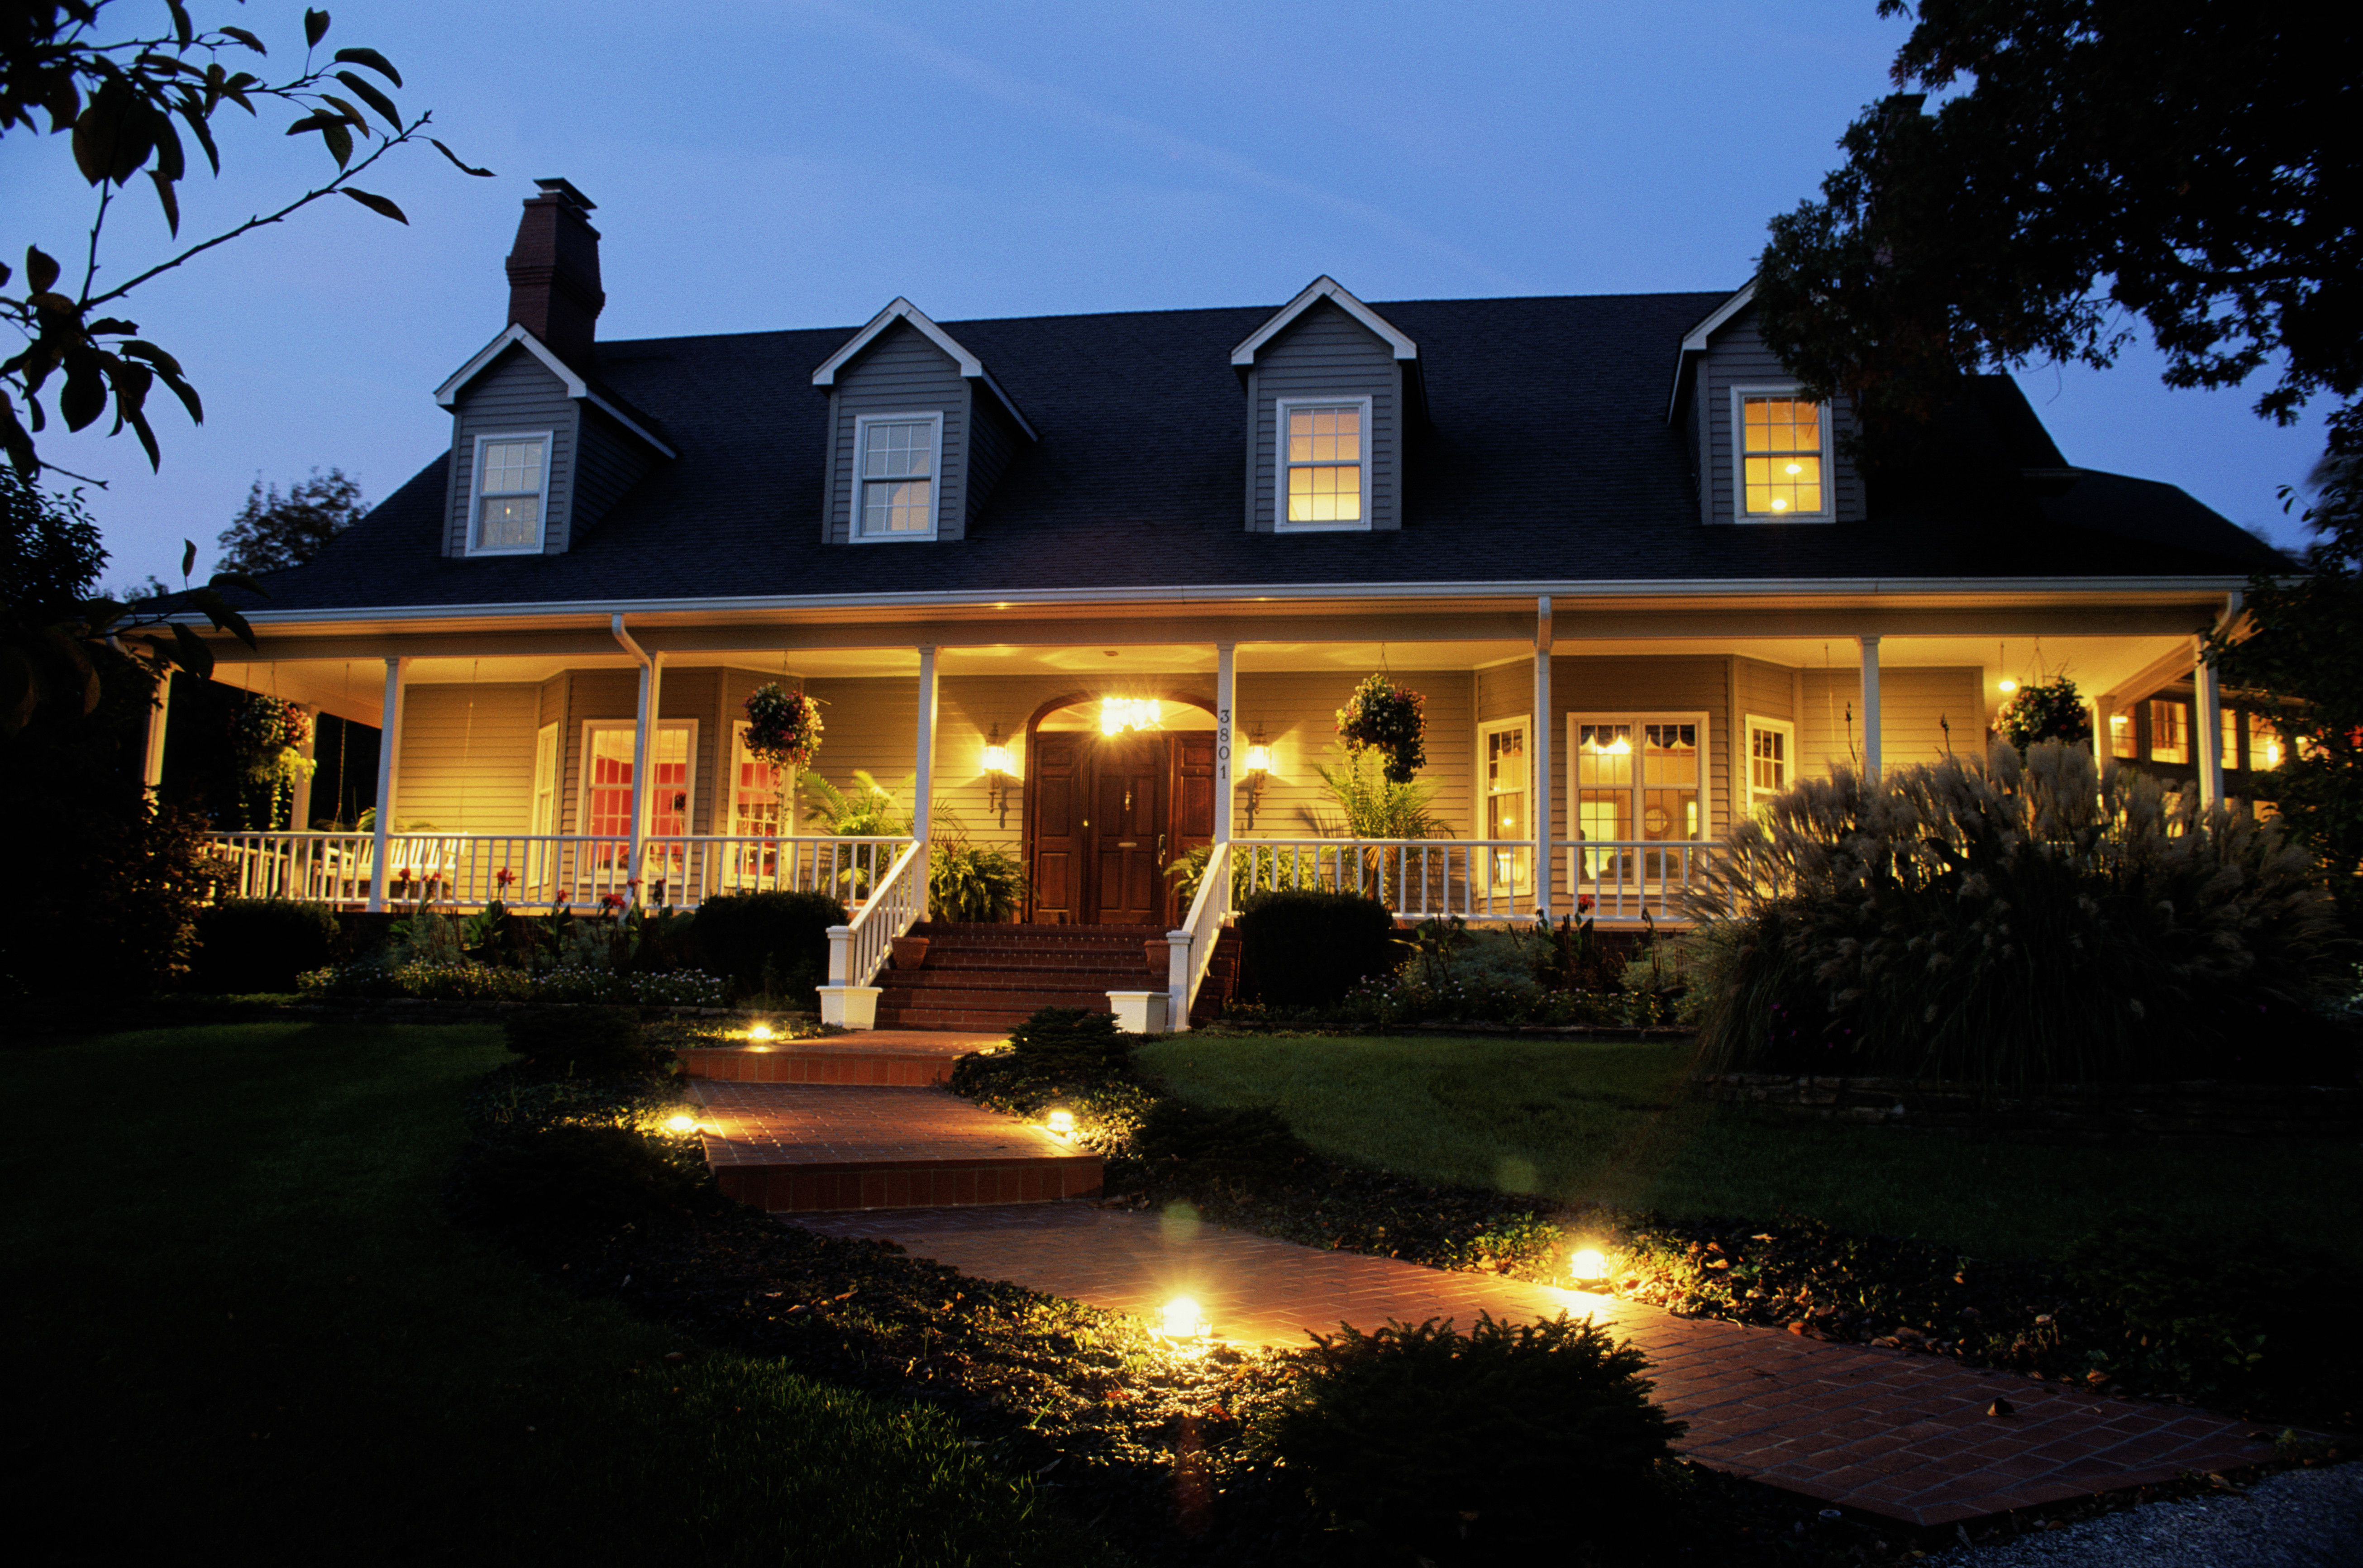 Landscape Path Lights Basics Of Line Vs Low Voltage Systems Outdoor Light Fixture Kills Everything On Circuit Electrical Diy